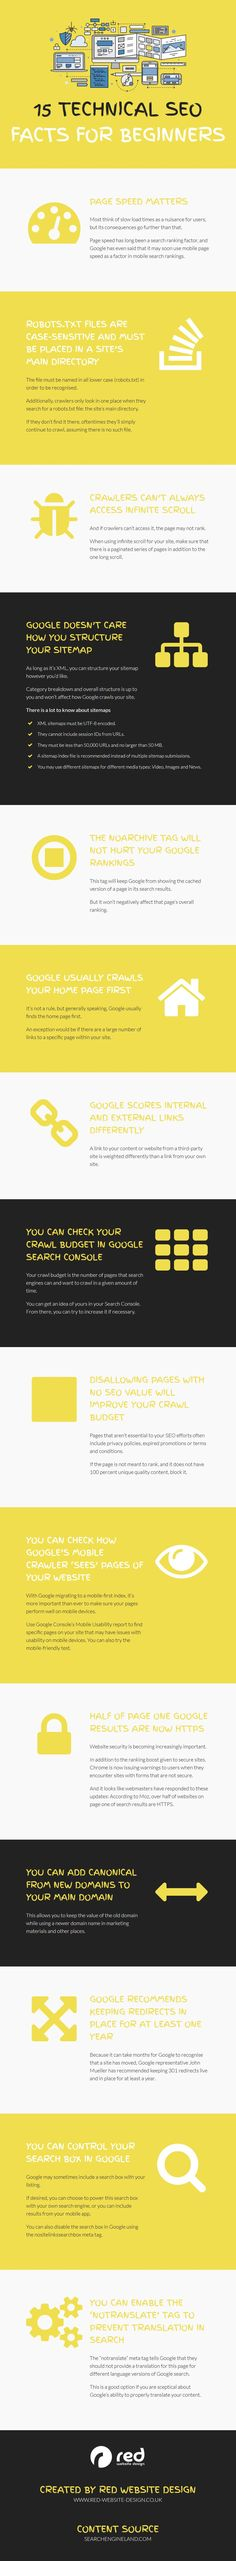 http://blog.red-website-design.co.uk/wp-content/uploads/2017/11/Can-Google-Crawl-Your-Site-15-Technical-SEO-Facts-You-Need-to-Know-1.jpg